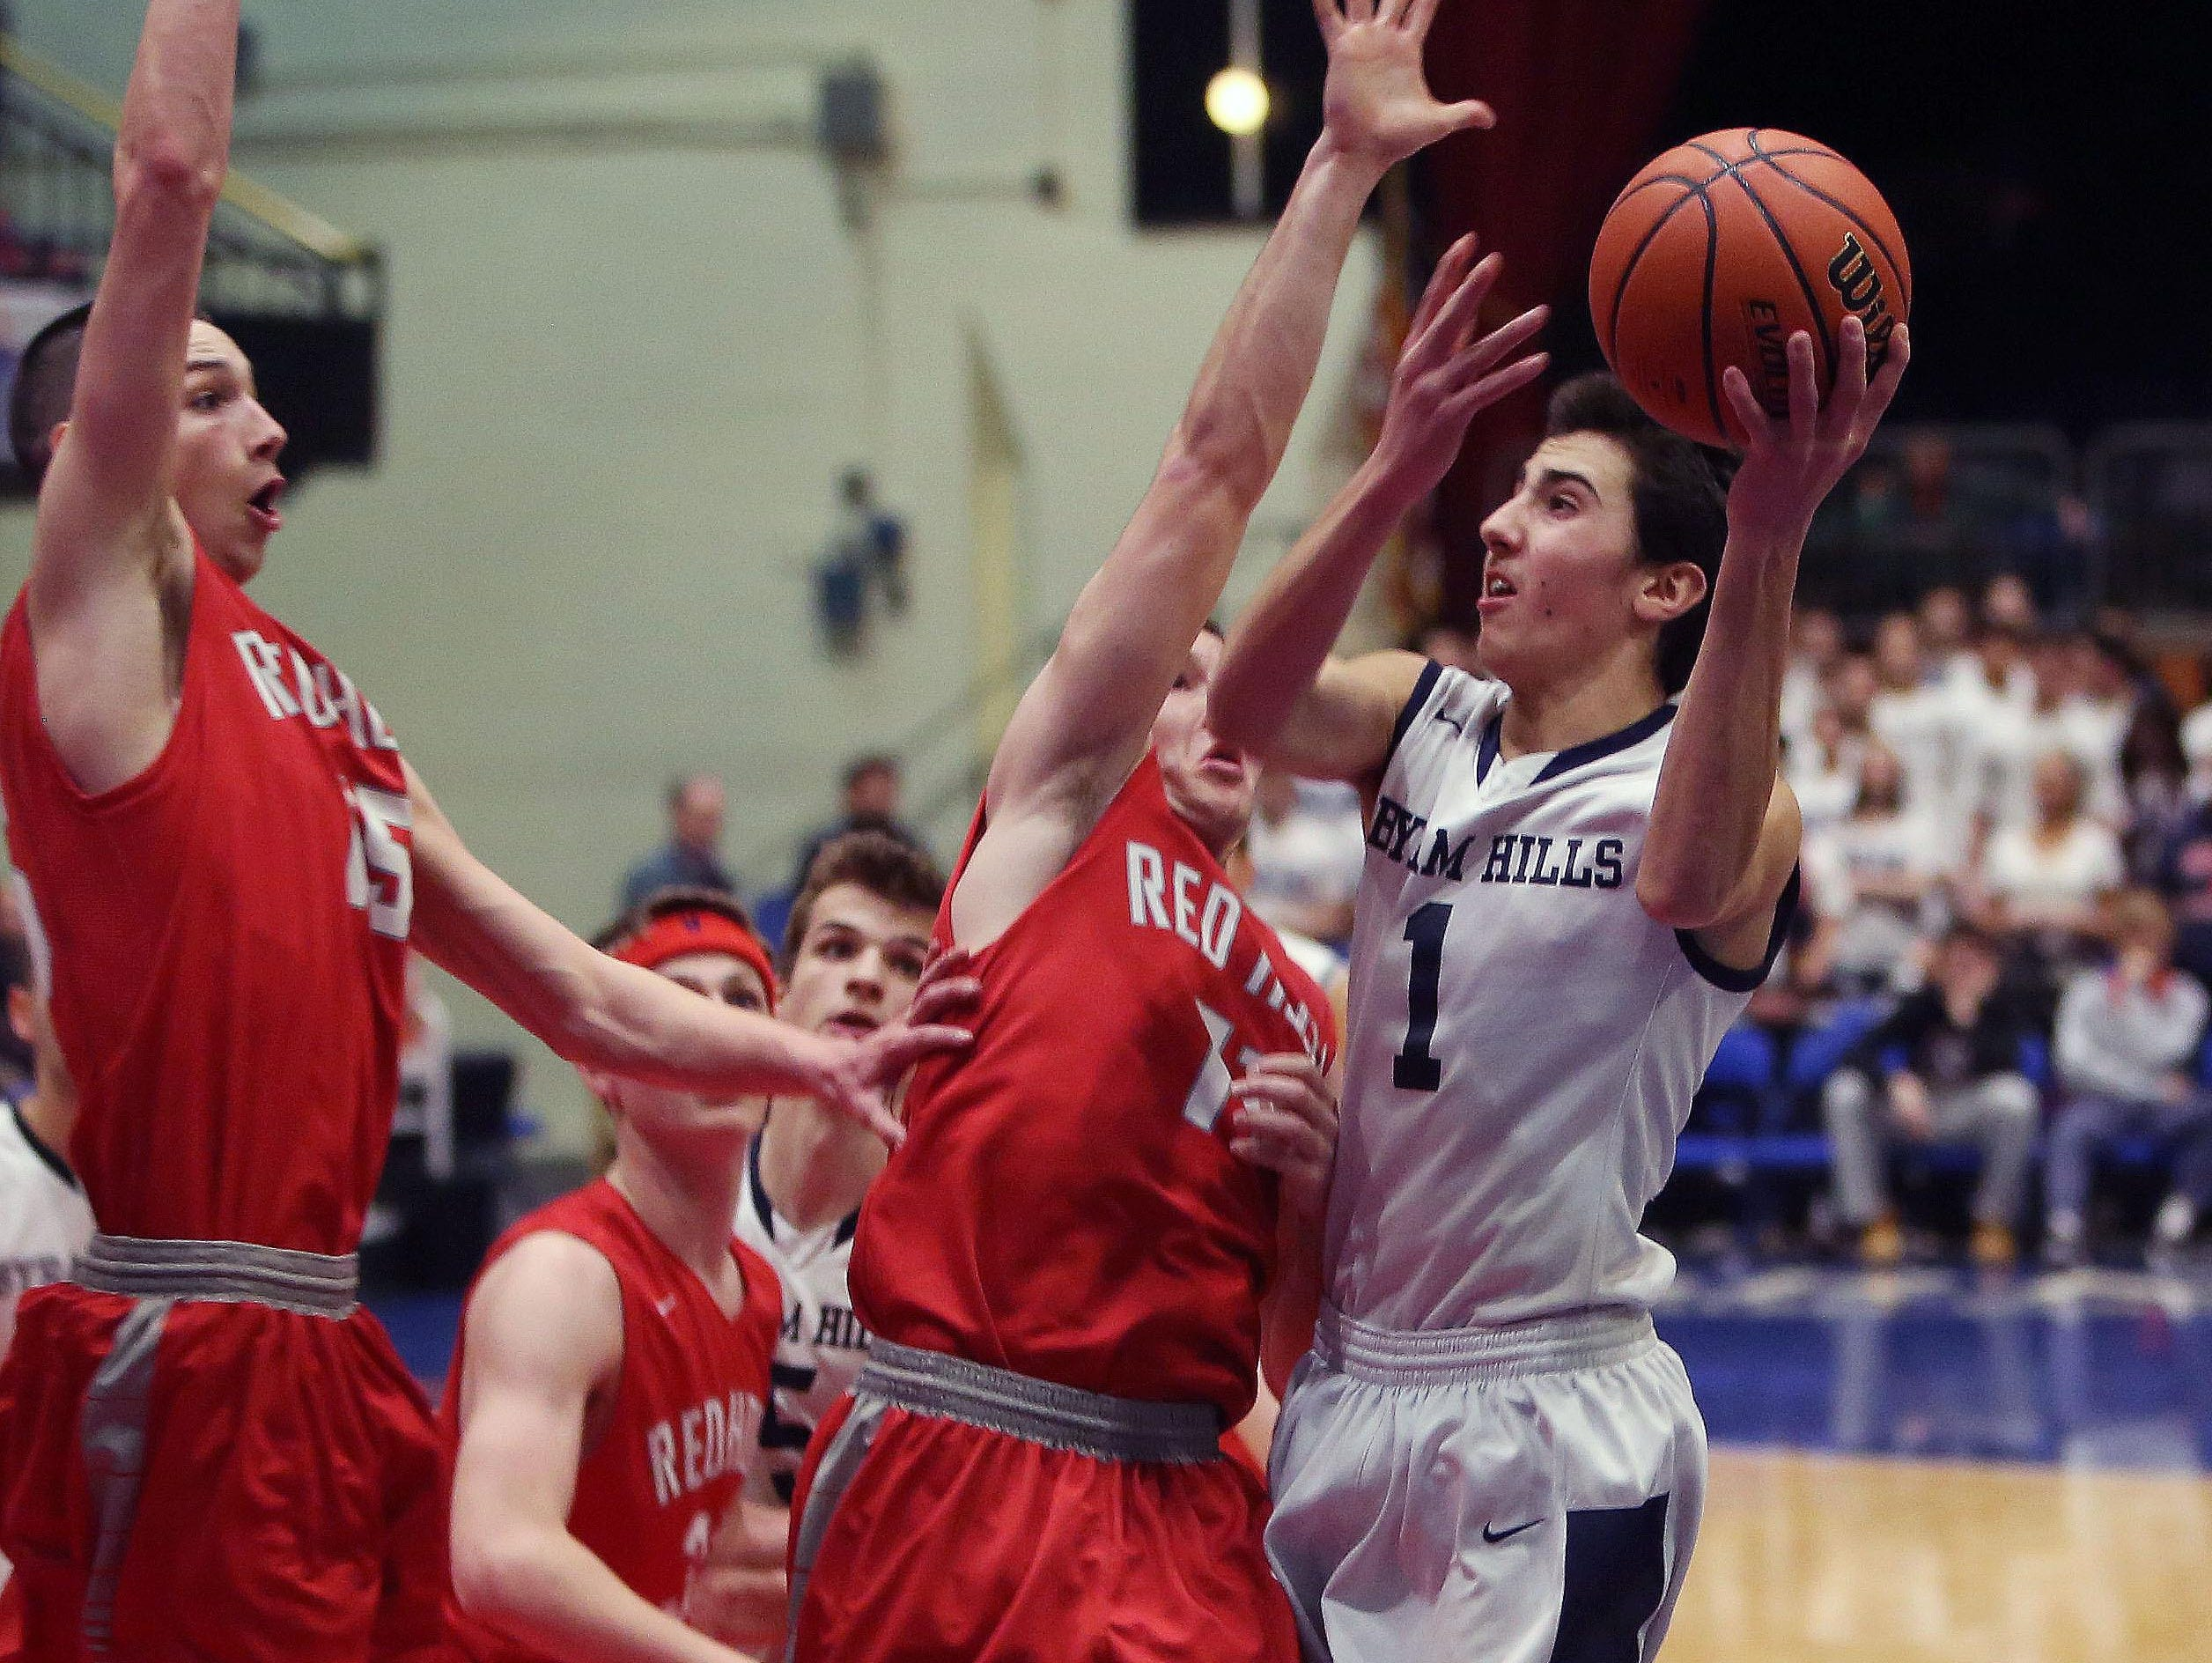 Byram Hills' Matt Milone (1) drives to the basket against Red Hook during the boys Class A basketball playoff game at the Westchester County Center in White Plains March. 1, 2016.